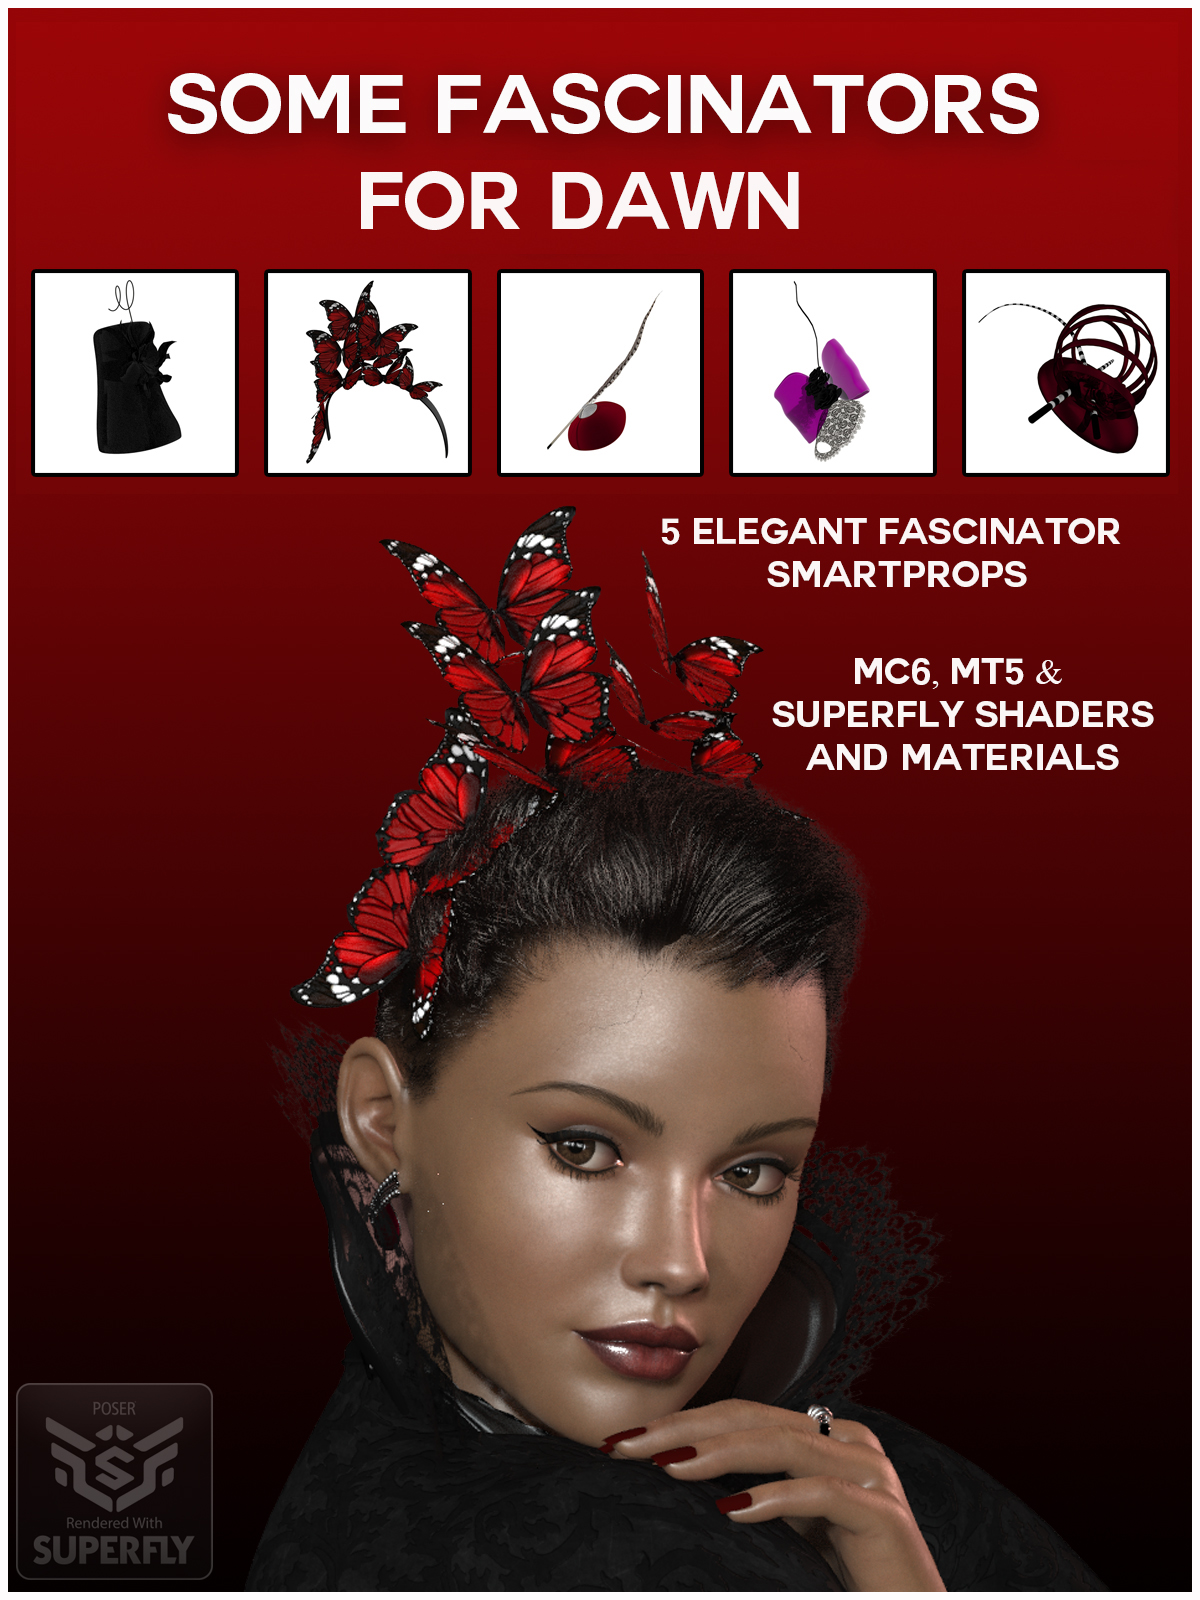 Some Fascinators for DAWN